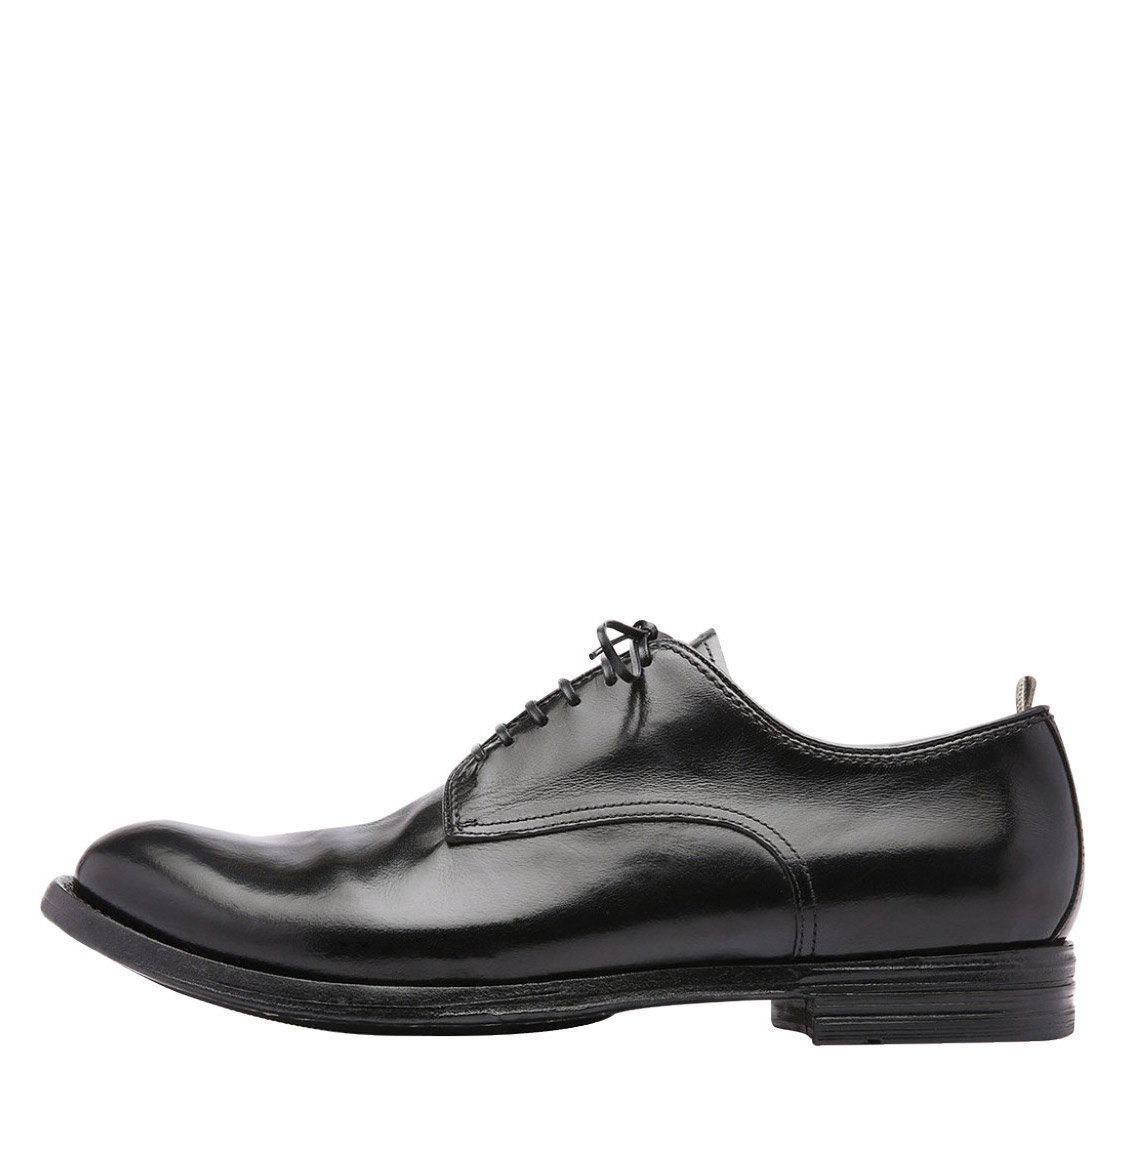 Officine Creative Anatomia Derby Leather Shoes Black